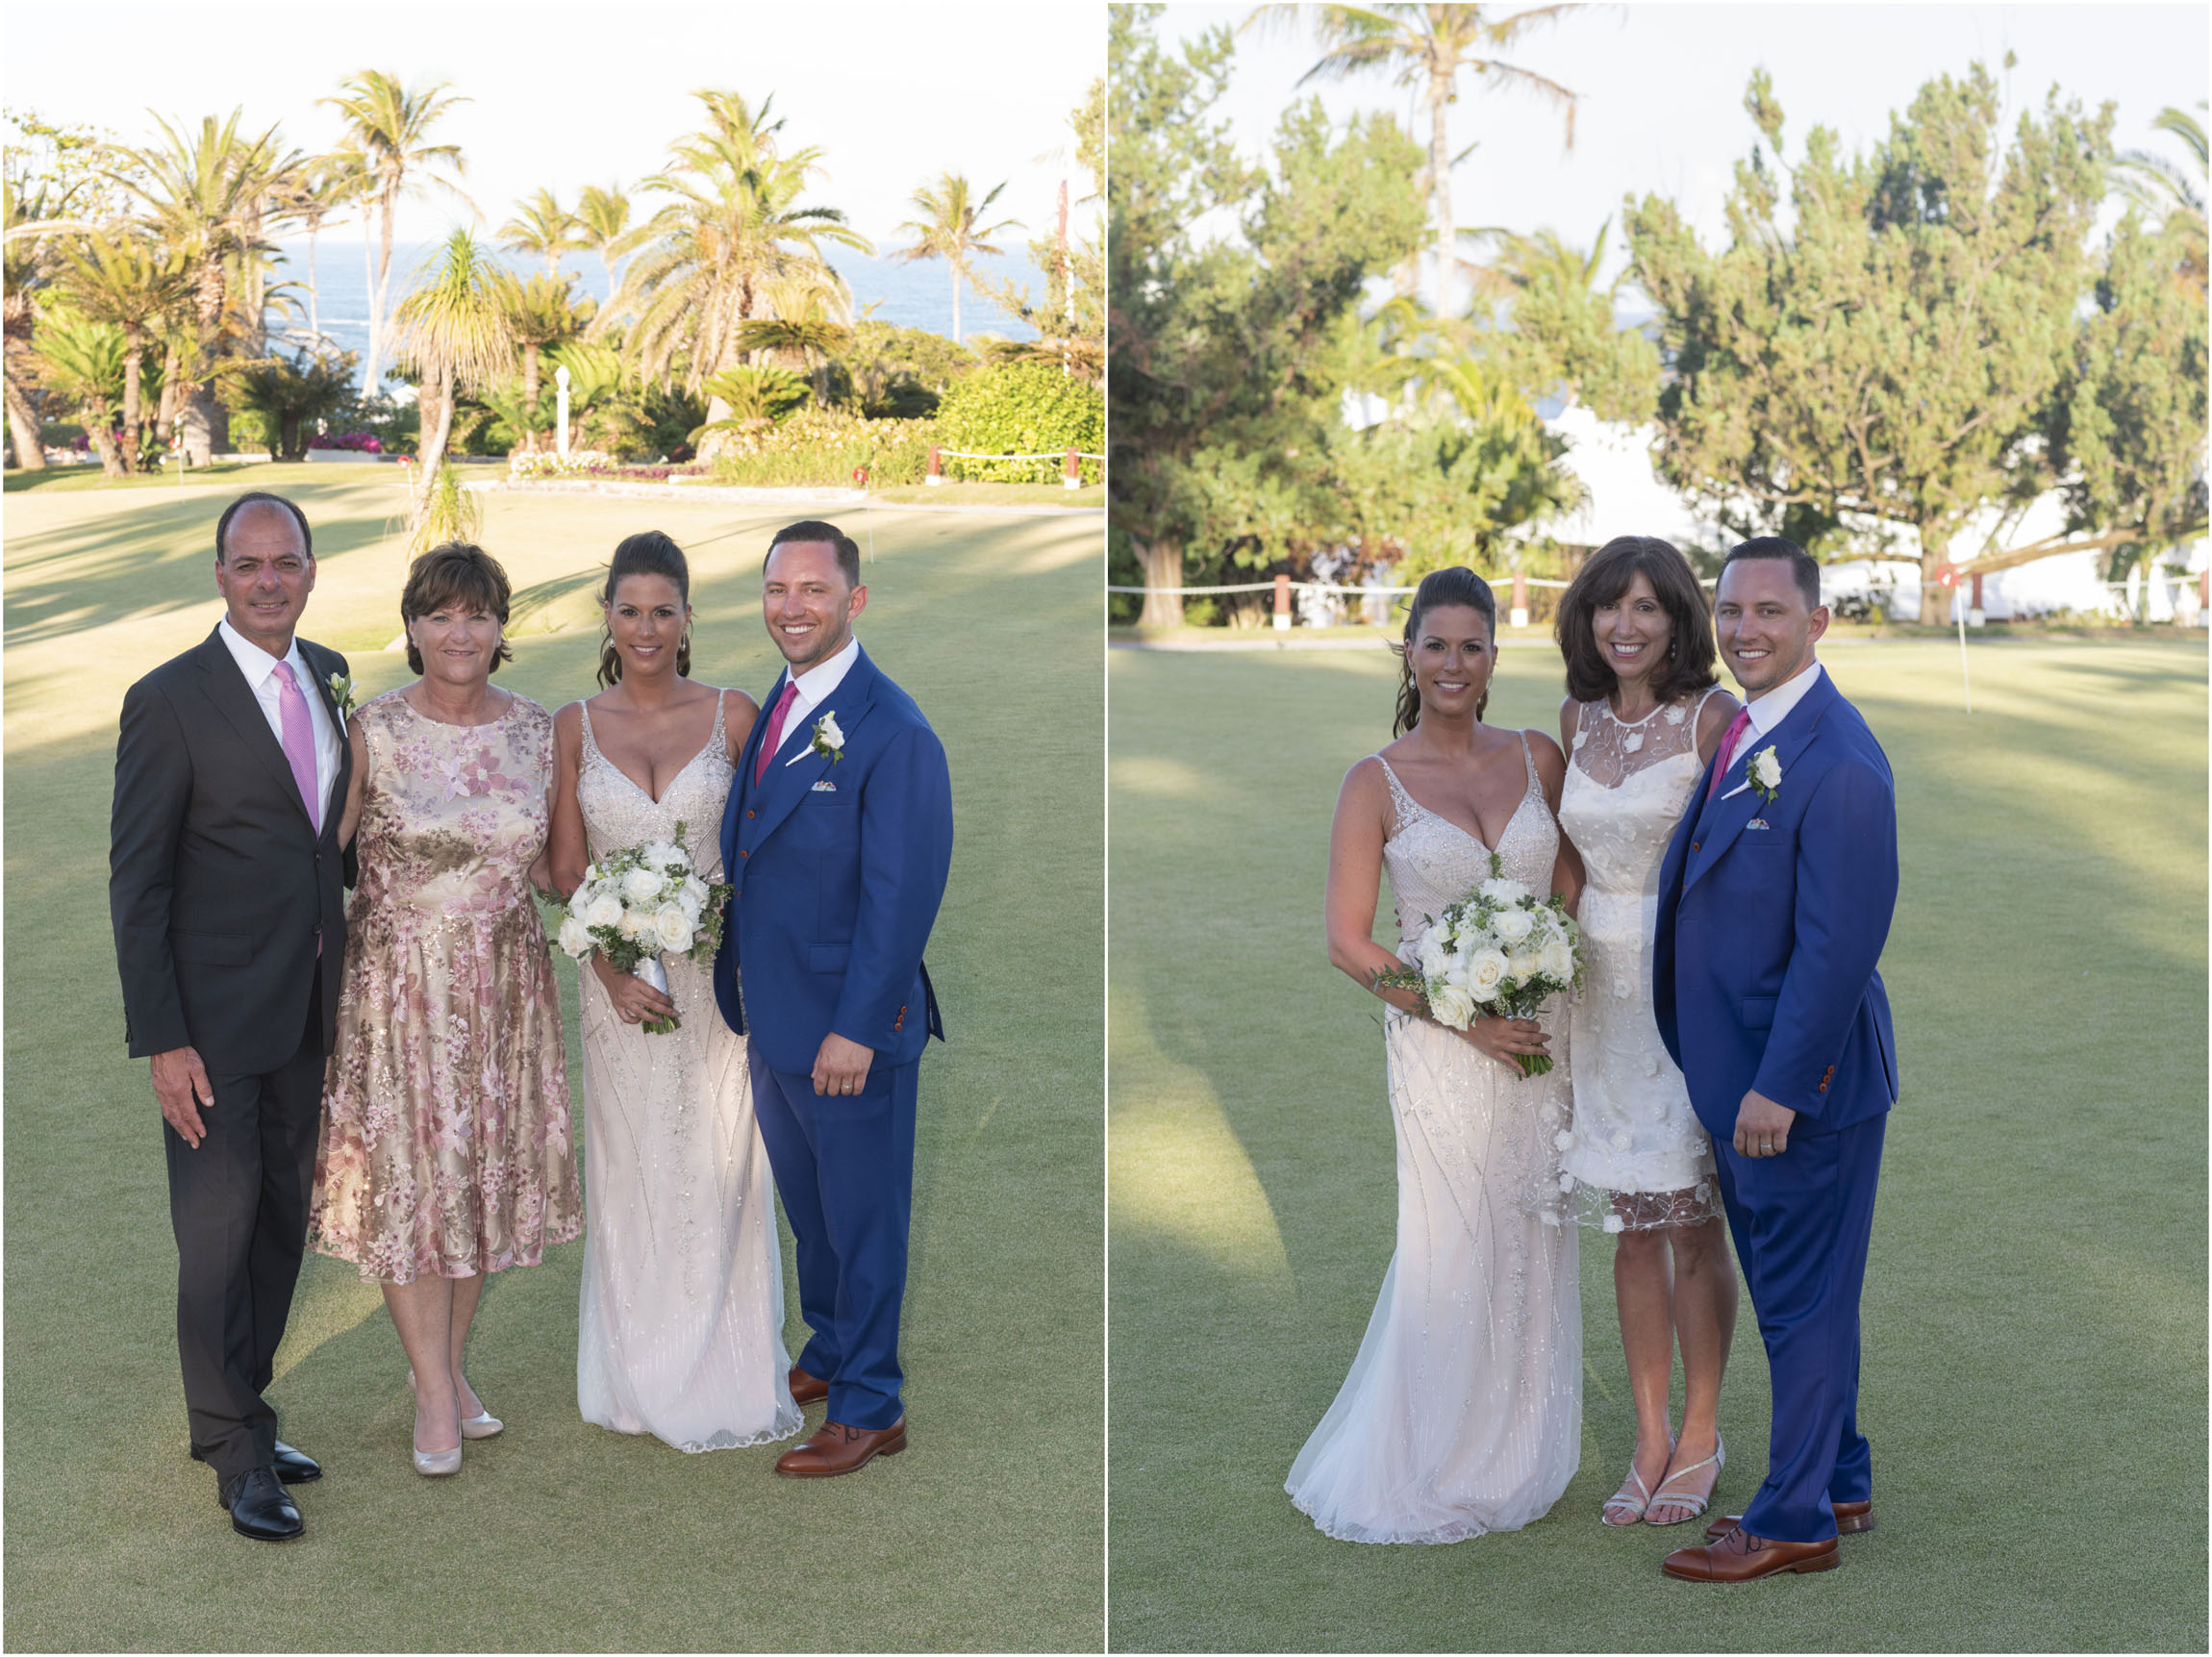 ©FianderFoto_Catherine_Kenny_Coral Beach Wedding_003.jpg